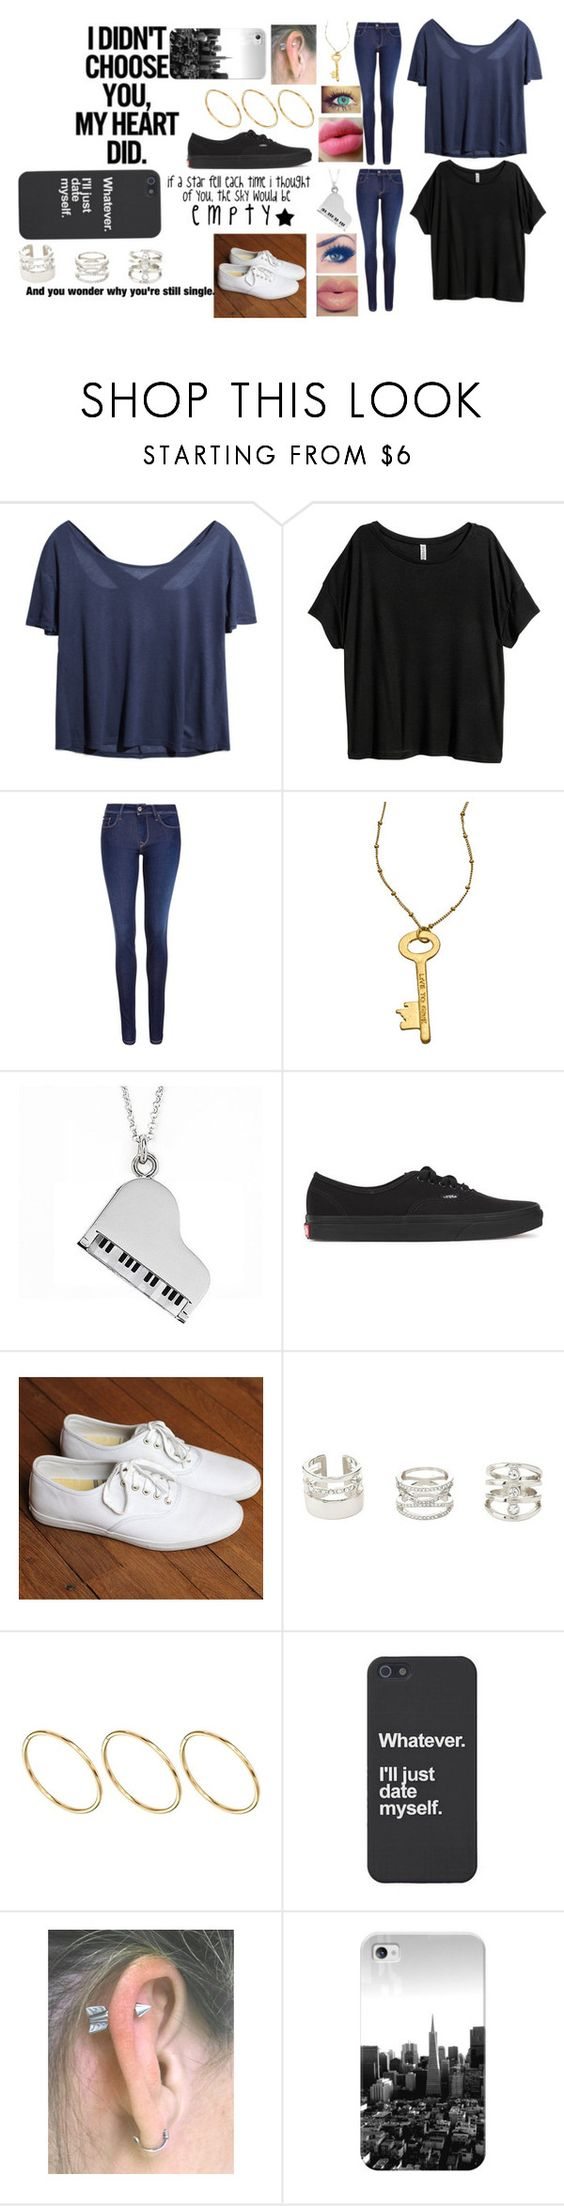 """""""Love both"""" by troylerzalfie on Polyvore featuring H&M, Salsa, Blu Bijoux, Jan Leslie, Vans, Love Quotes Scarves, Keds, Charlotte Russe, ASOS and Casetify"""